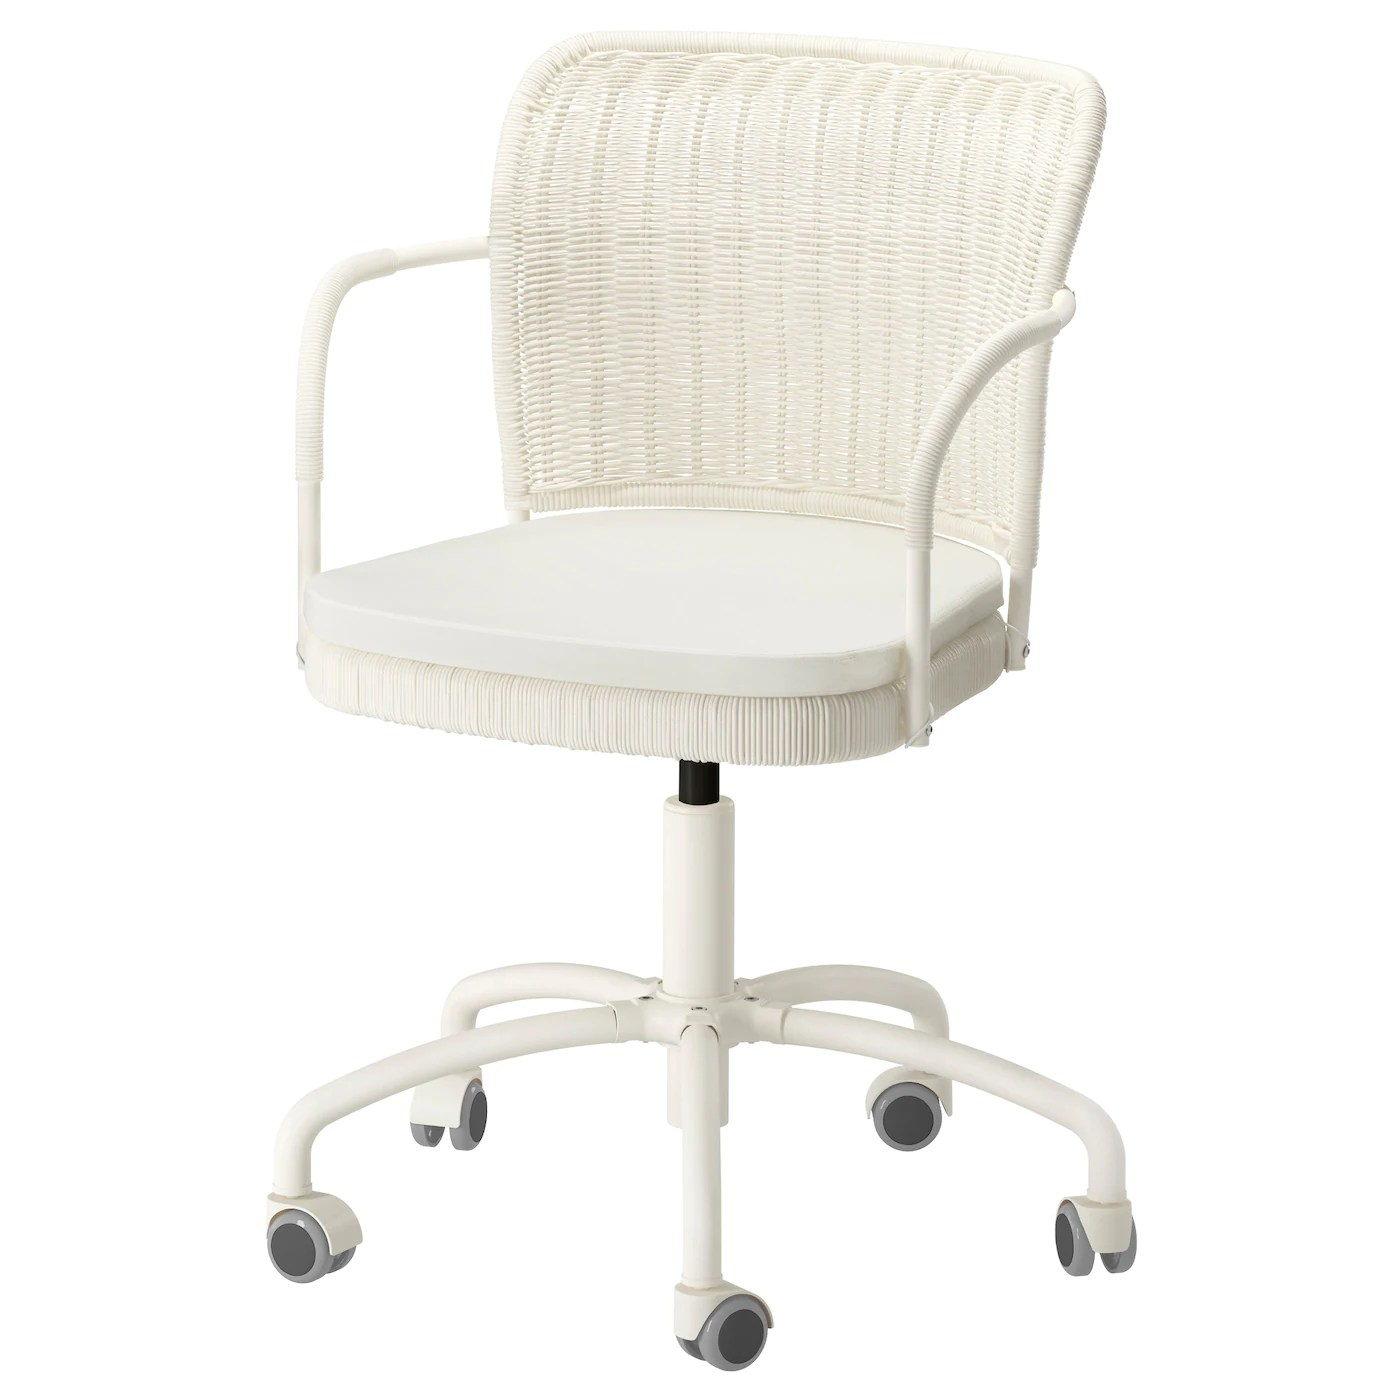 White Chair Ikea Gregor Swivel Chair White Blekinge White Ikea